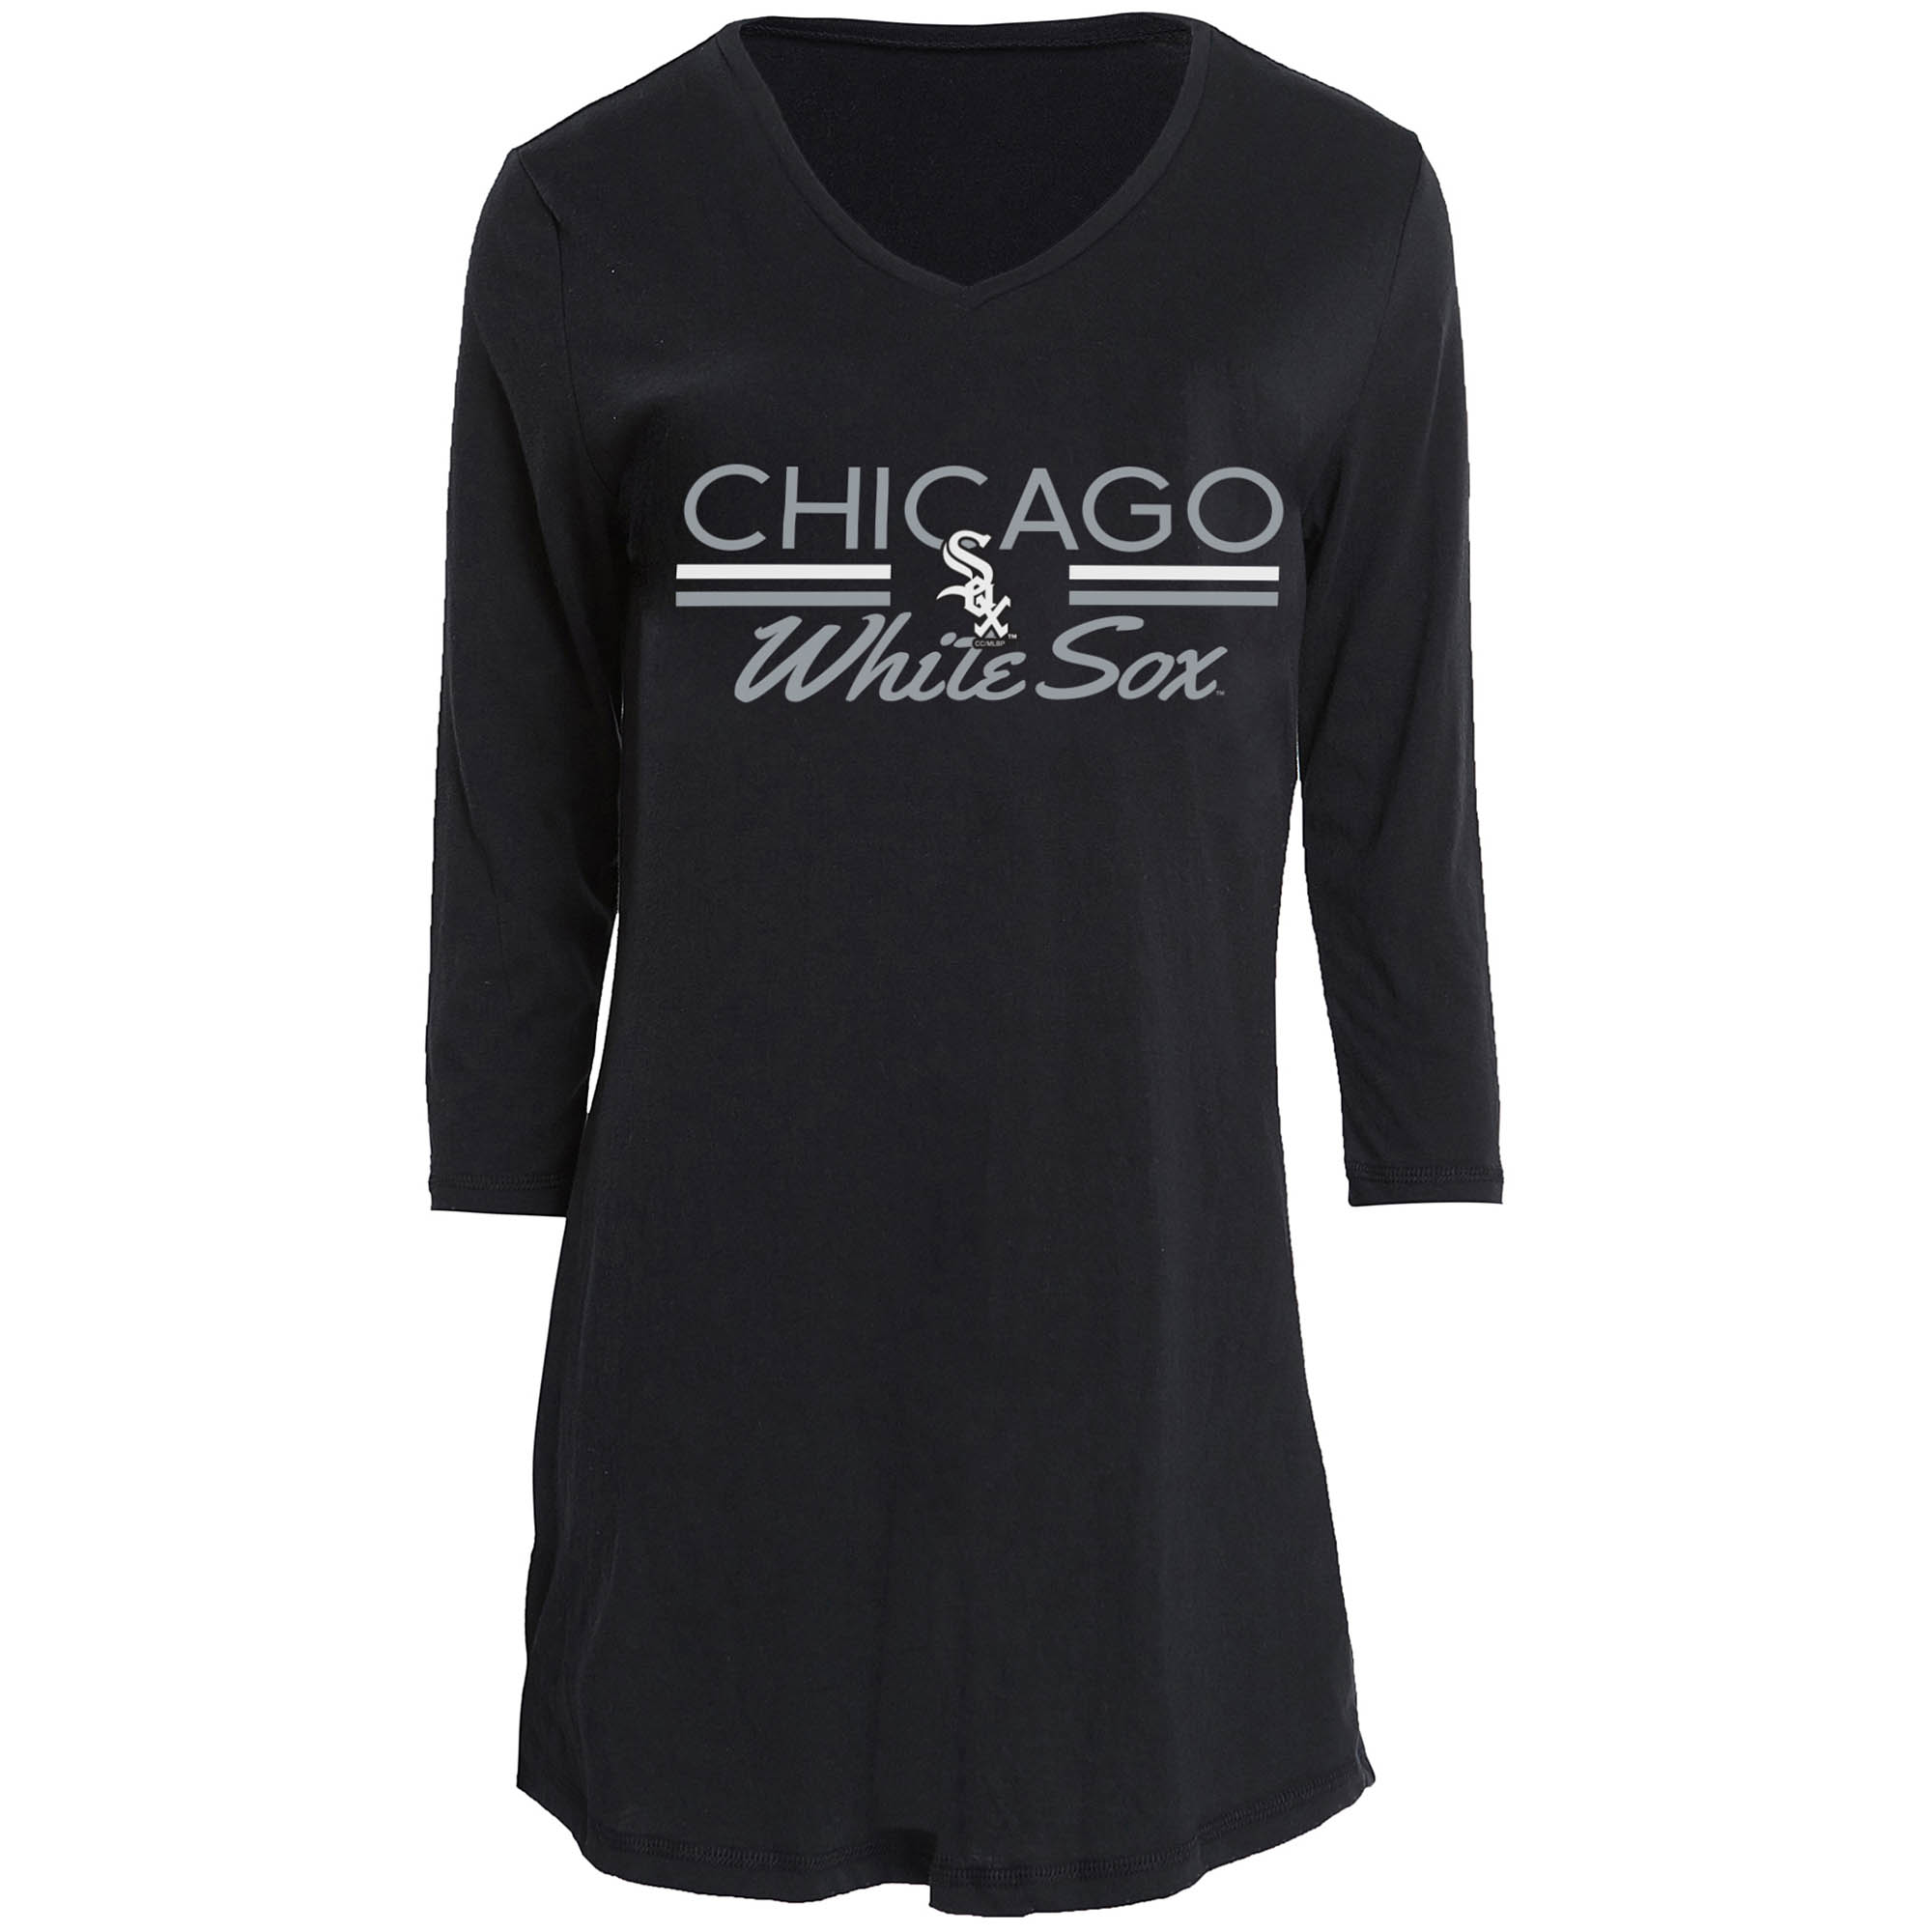 Chicago White Sox Concepts Sport Women's Duo V-Neck Nightshirt - Black